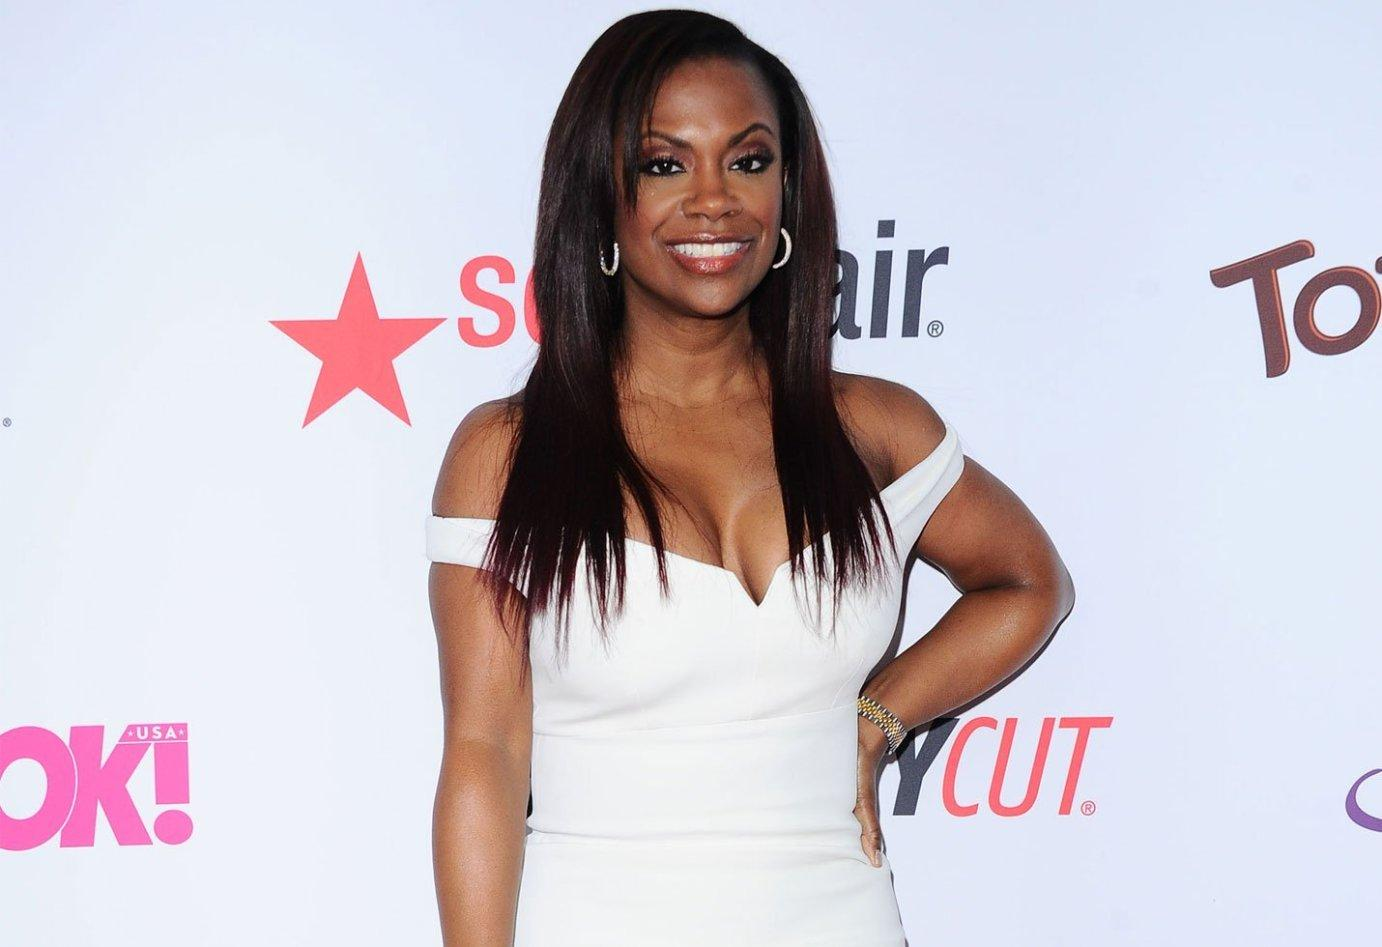 Kandi Burruss Amazes Fans With Recent Pics From The Toronto Carnival